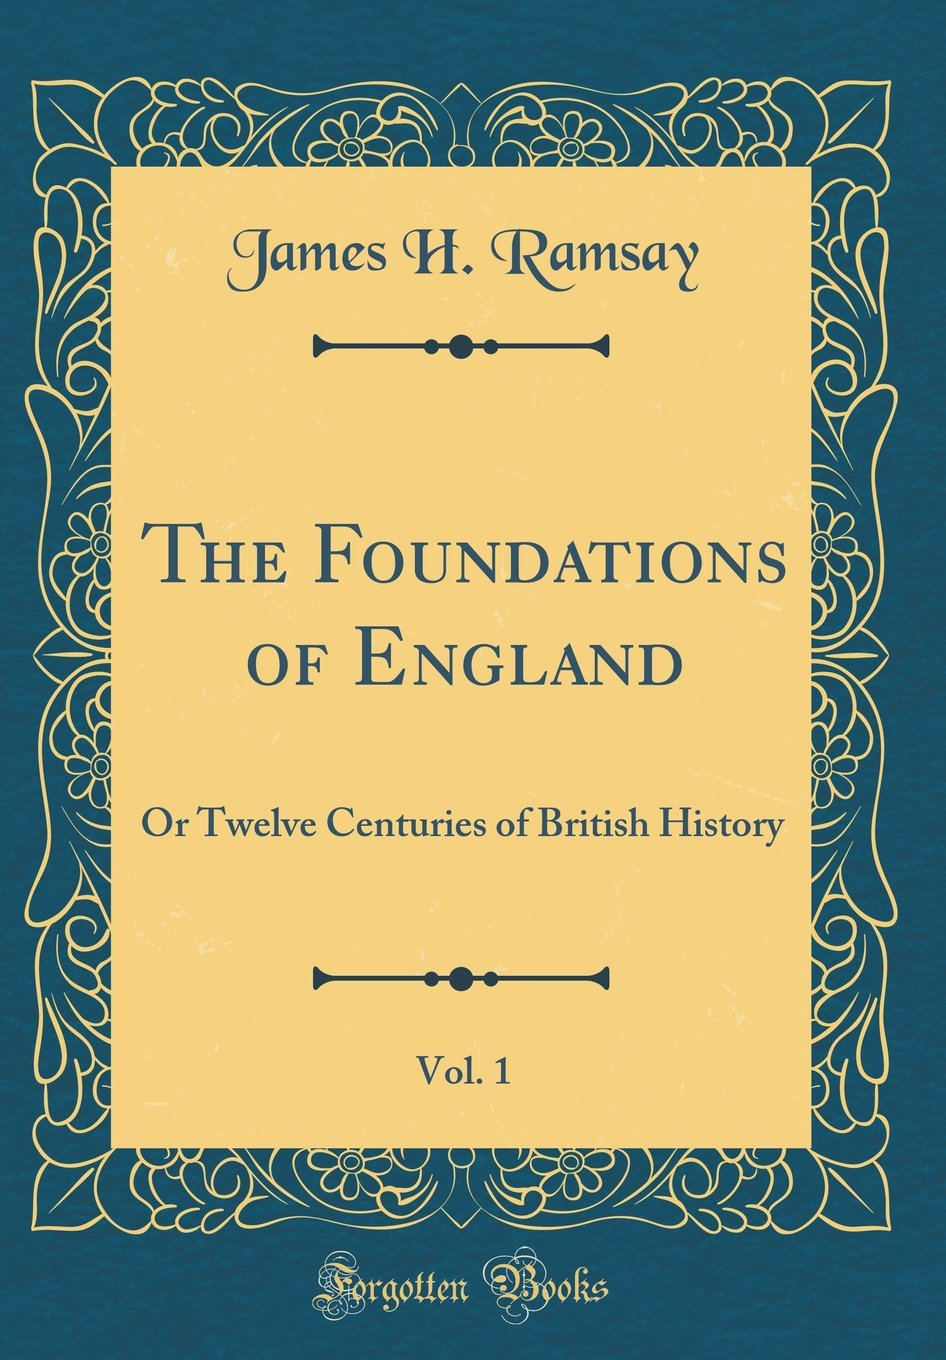 Download The Foundations of England, Vol. 1: Or Twelve Centuries of British History (Classic Reprint) PDF